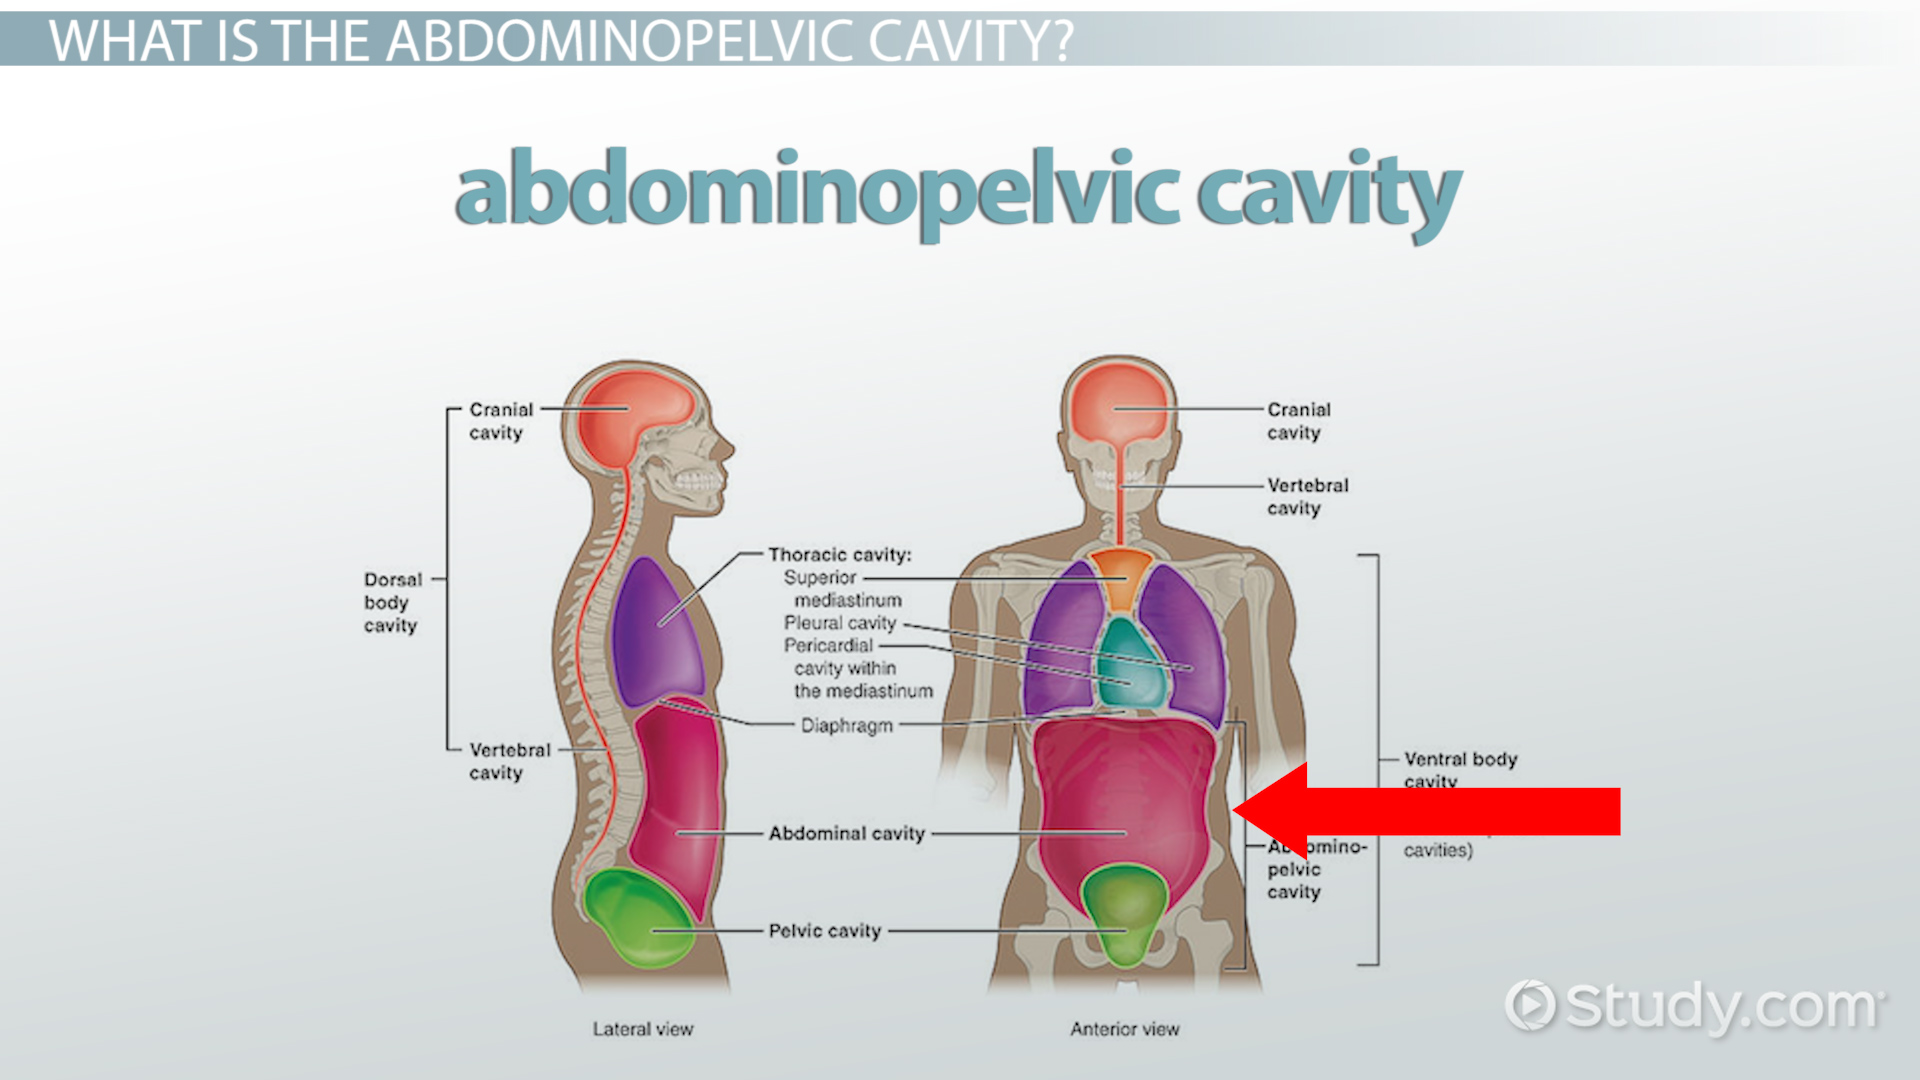 Abdominopelvic Cavity: Bony Landmarks, Organs & Regions - Video ...